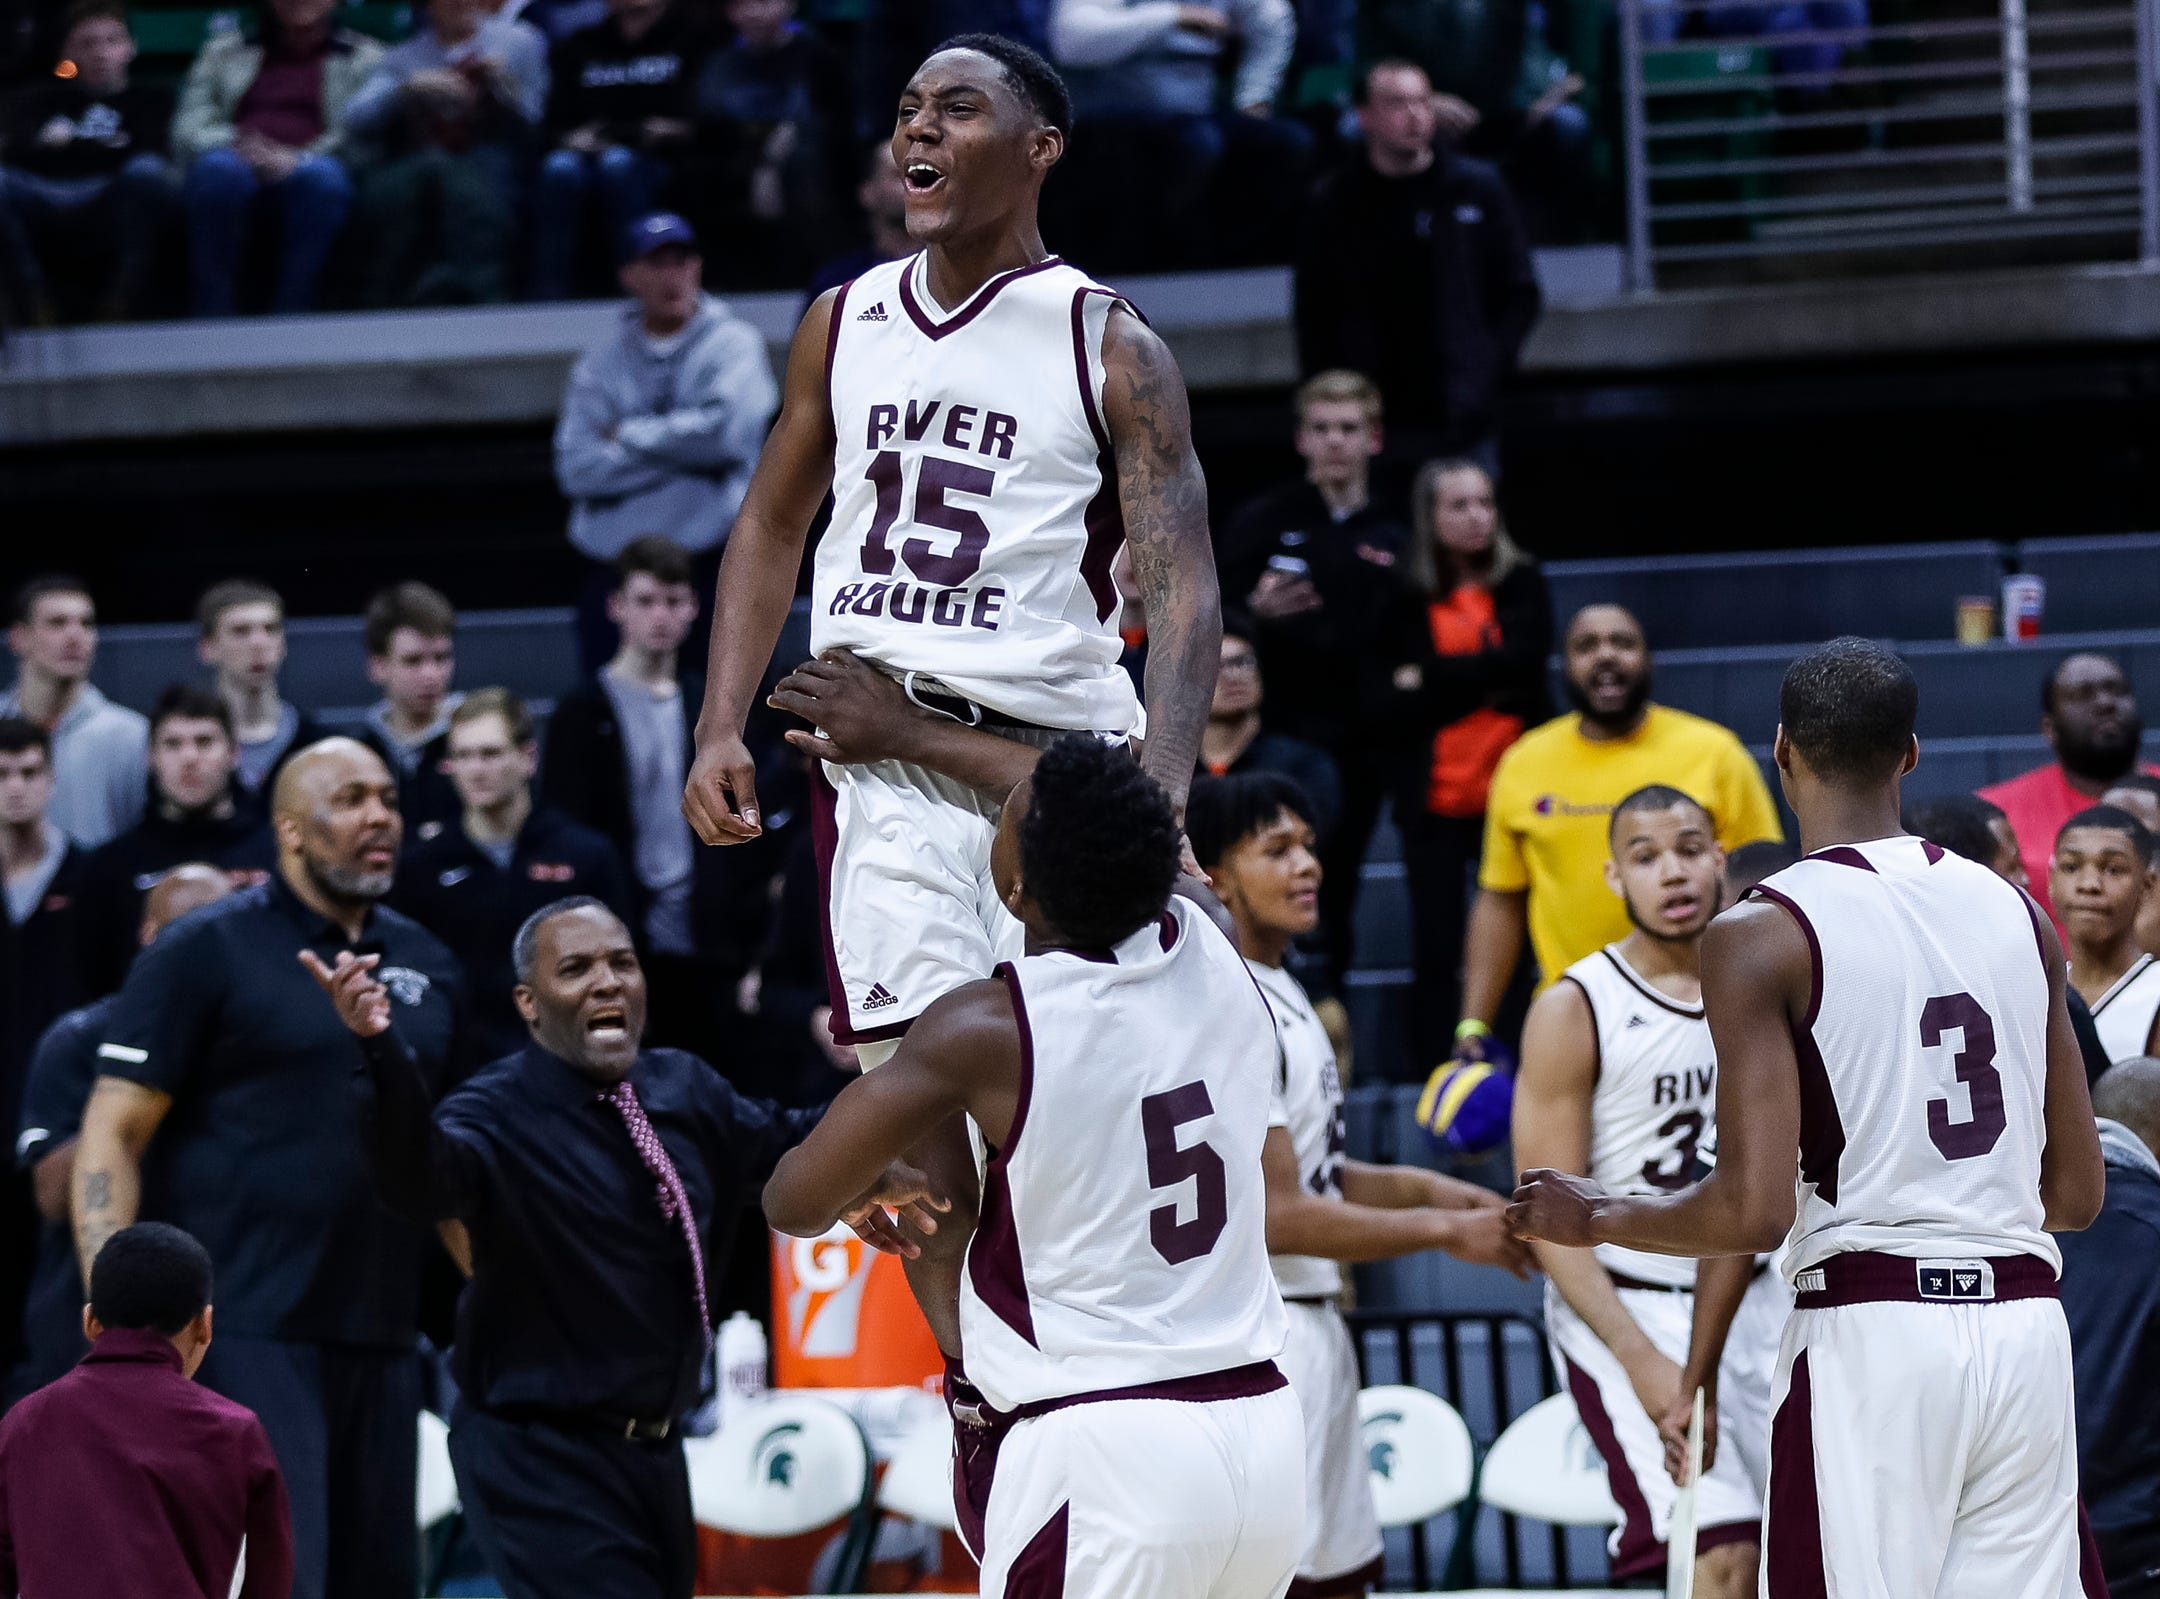 Harper Woods Chandler Park Demonte Thompson (15) is being lifted up teammate to celebrate their 72-66 win over Harper Woods Chandler Park in overtime of MHSAA Division 2 semifinal at the Breslin Center in East Lansing, Friday, March 15, 2019.